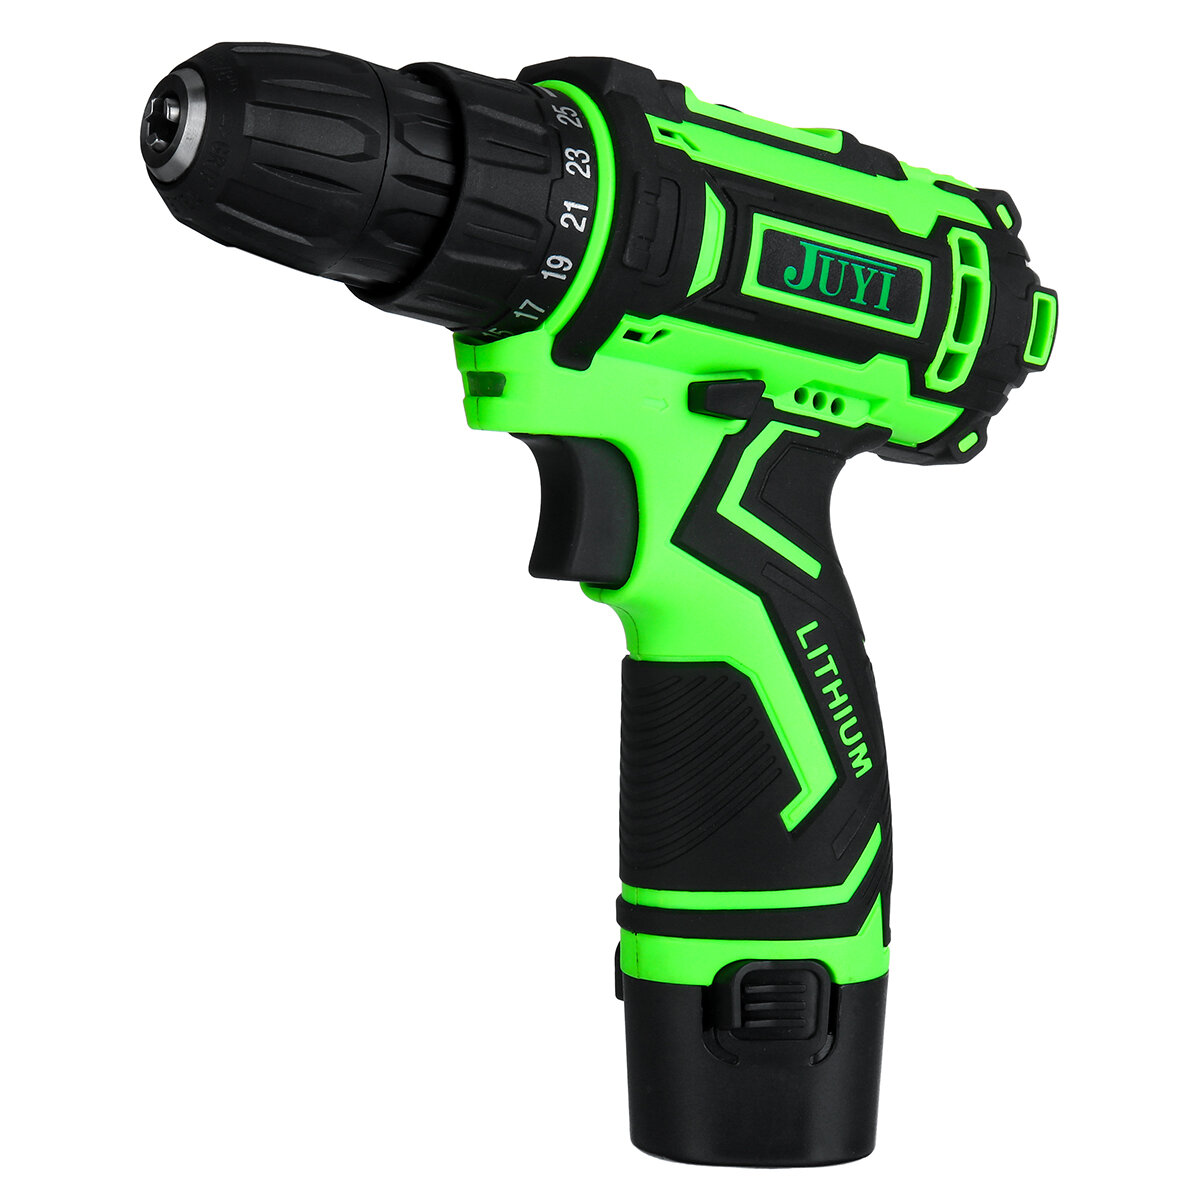 42VF Li-Ion Battery Cordless Rechargeable Electric Impact Drill Driver Screwdriver LED Light - 10